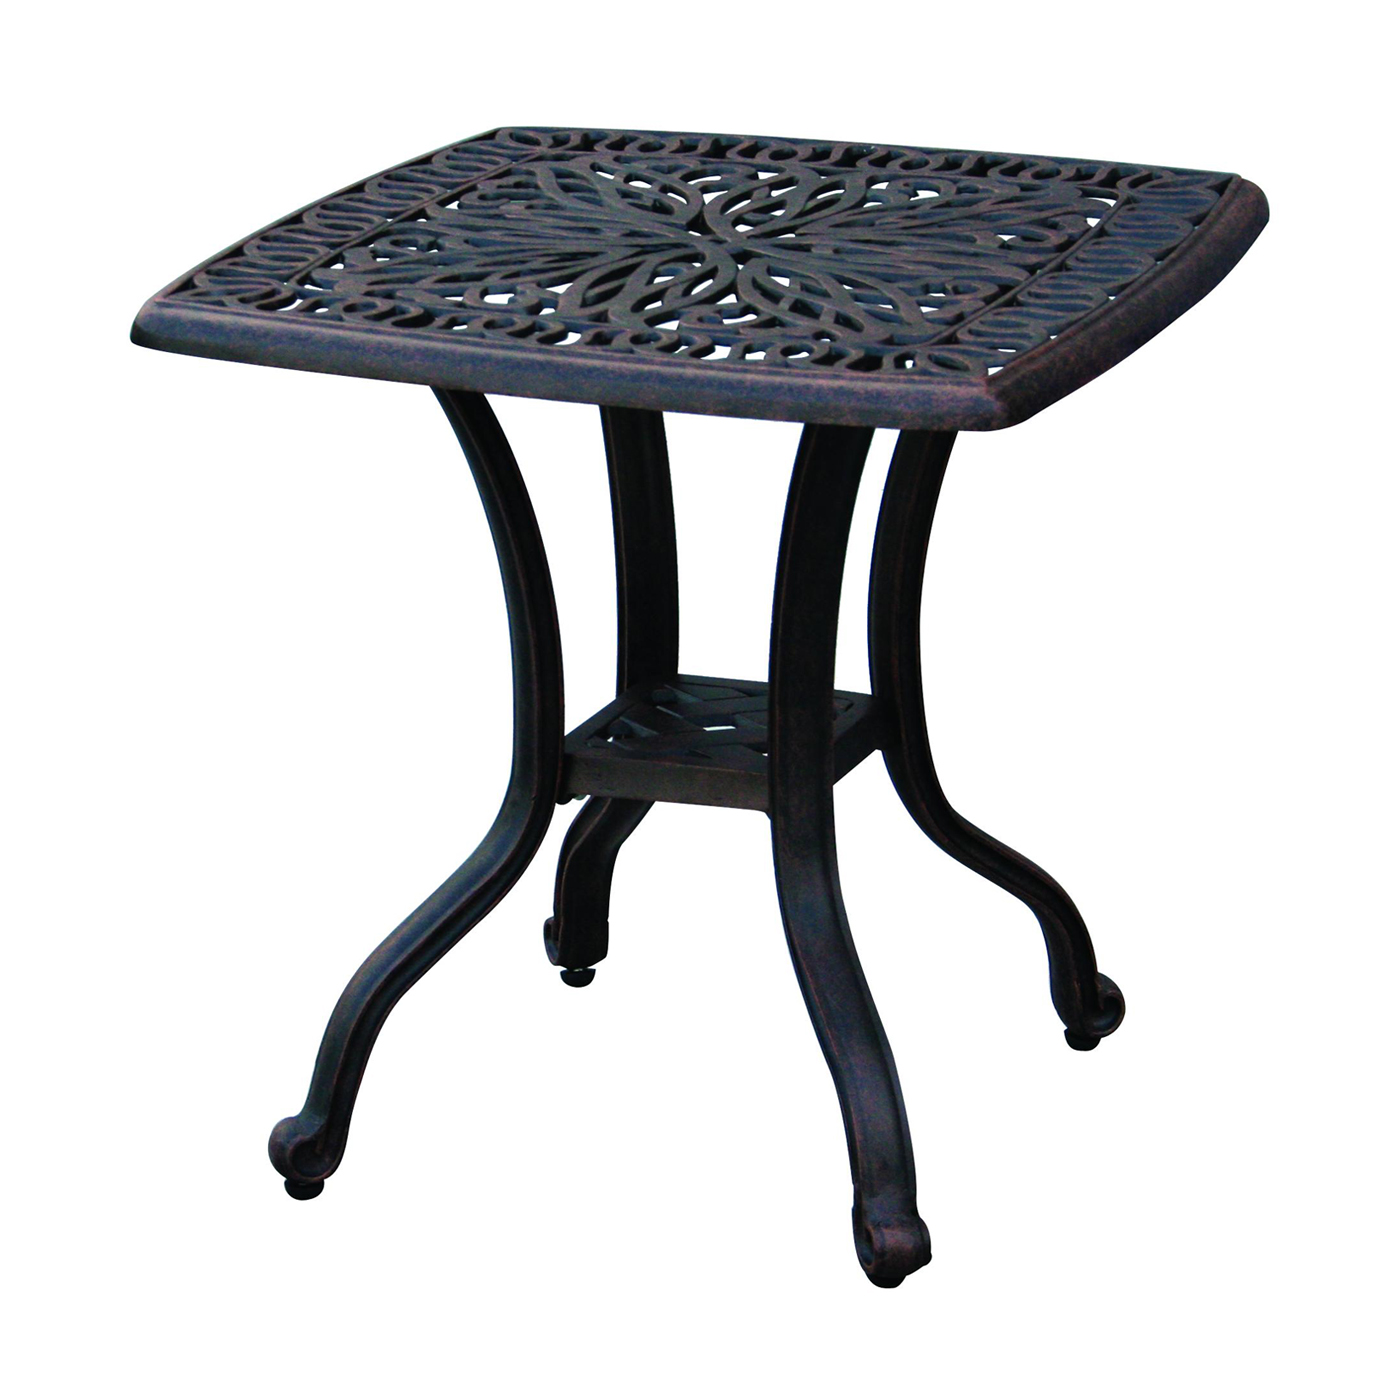 darlee elisabeth square end table atg modern accent trestle target outdoor tables clear acrylic cocktail bar height dining knotty pine stools mosaic ikea couch covers mini tiffany